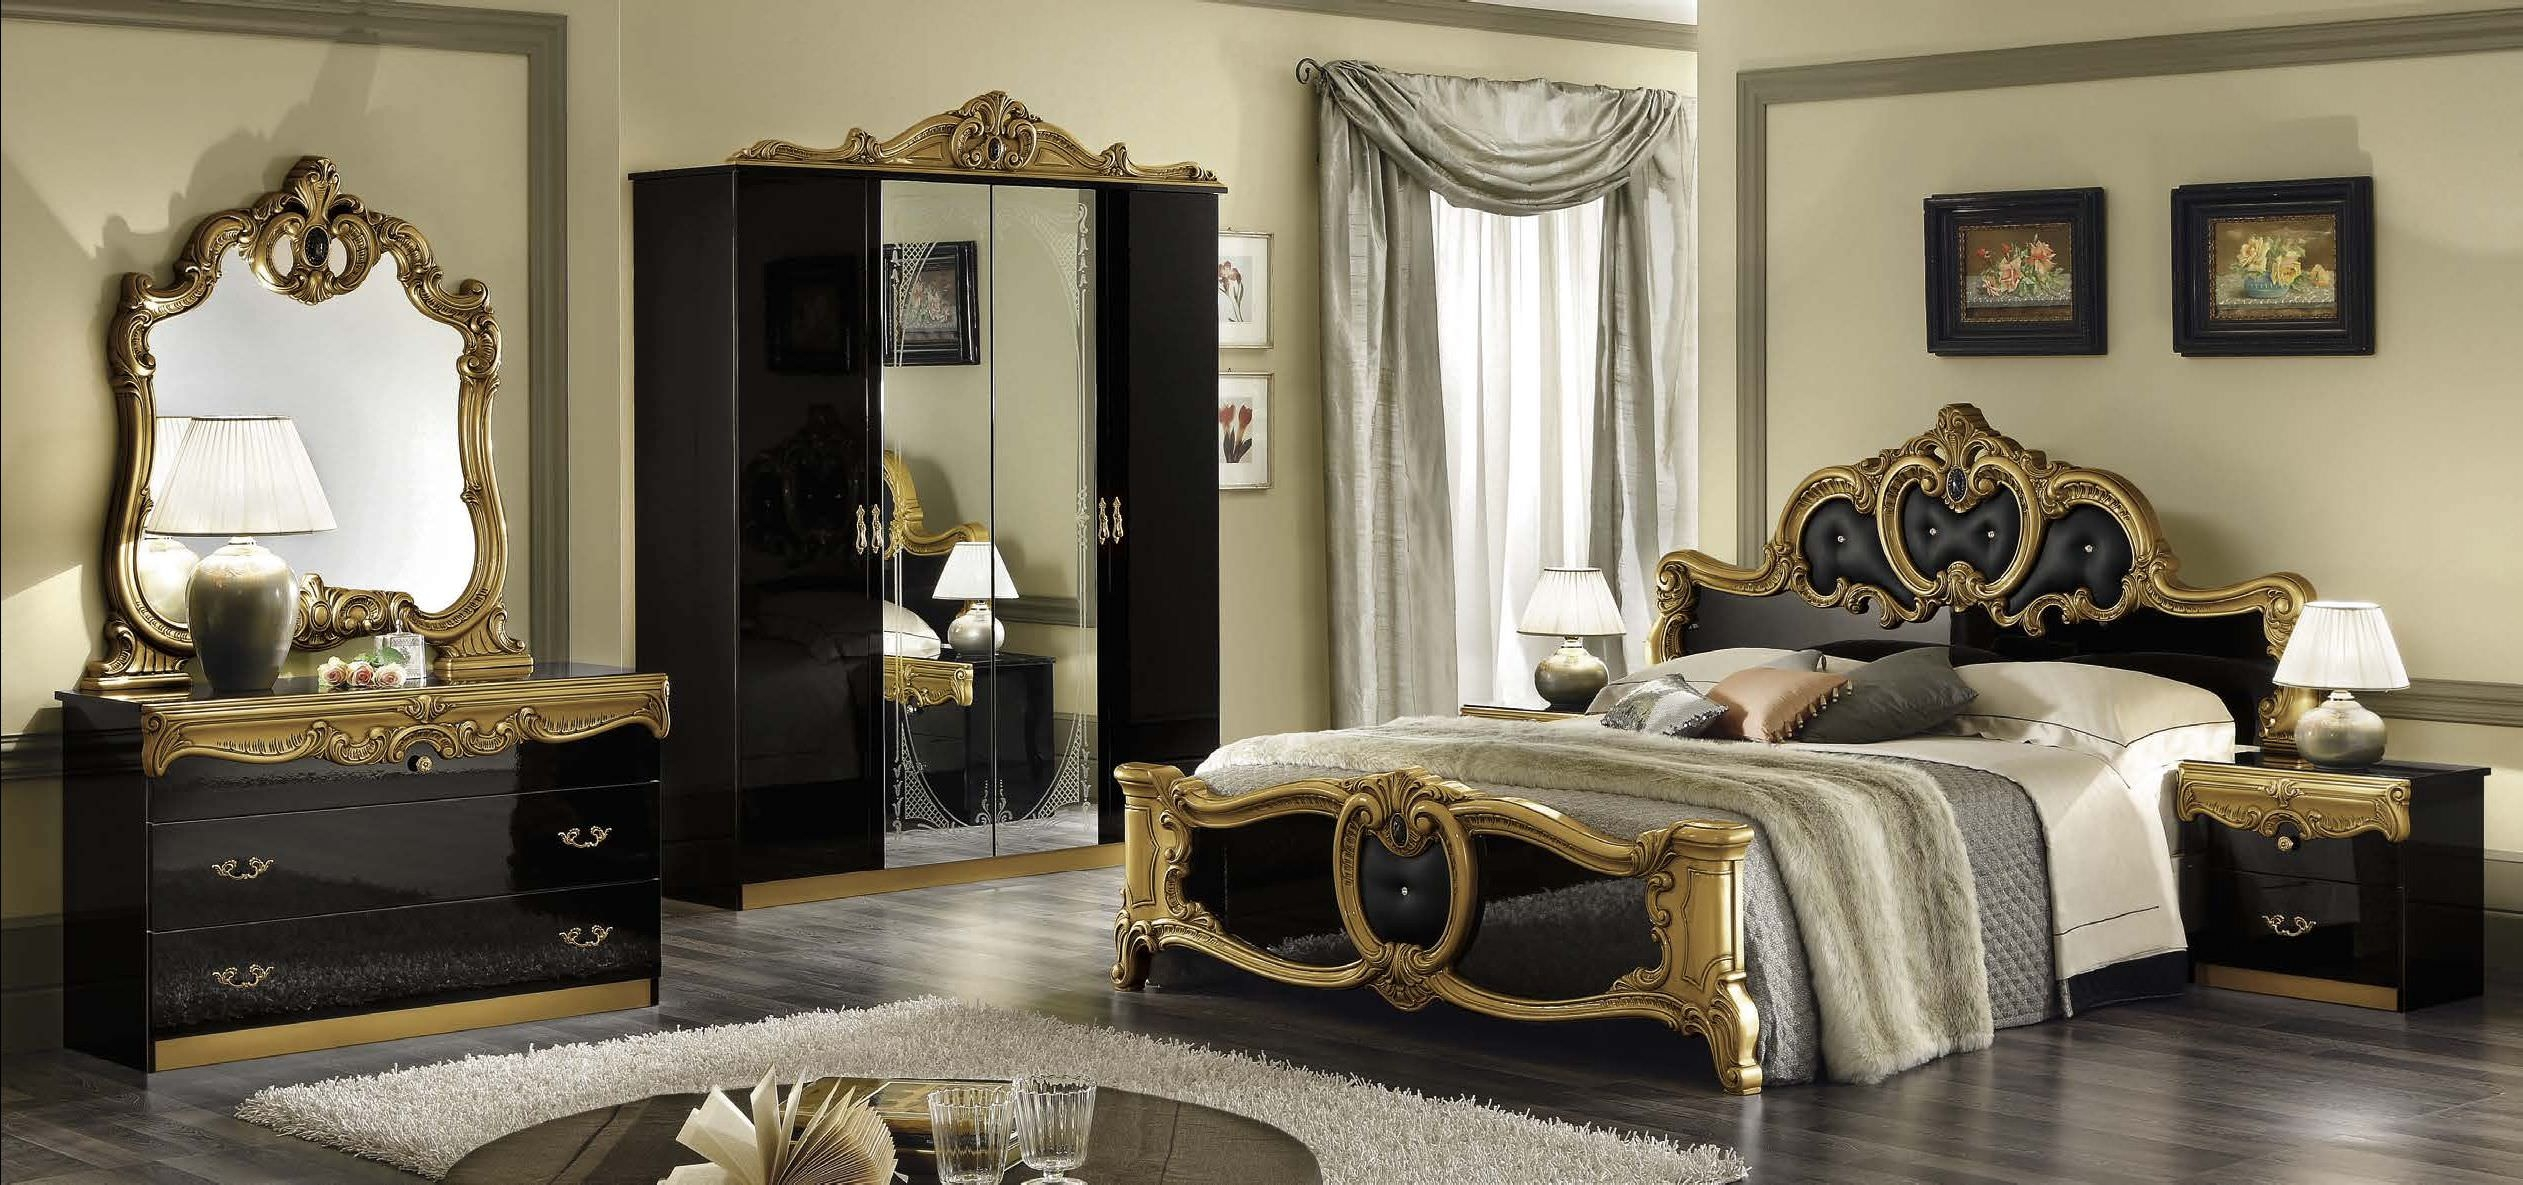 black and gold bedroom design photo - 4